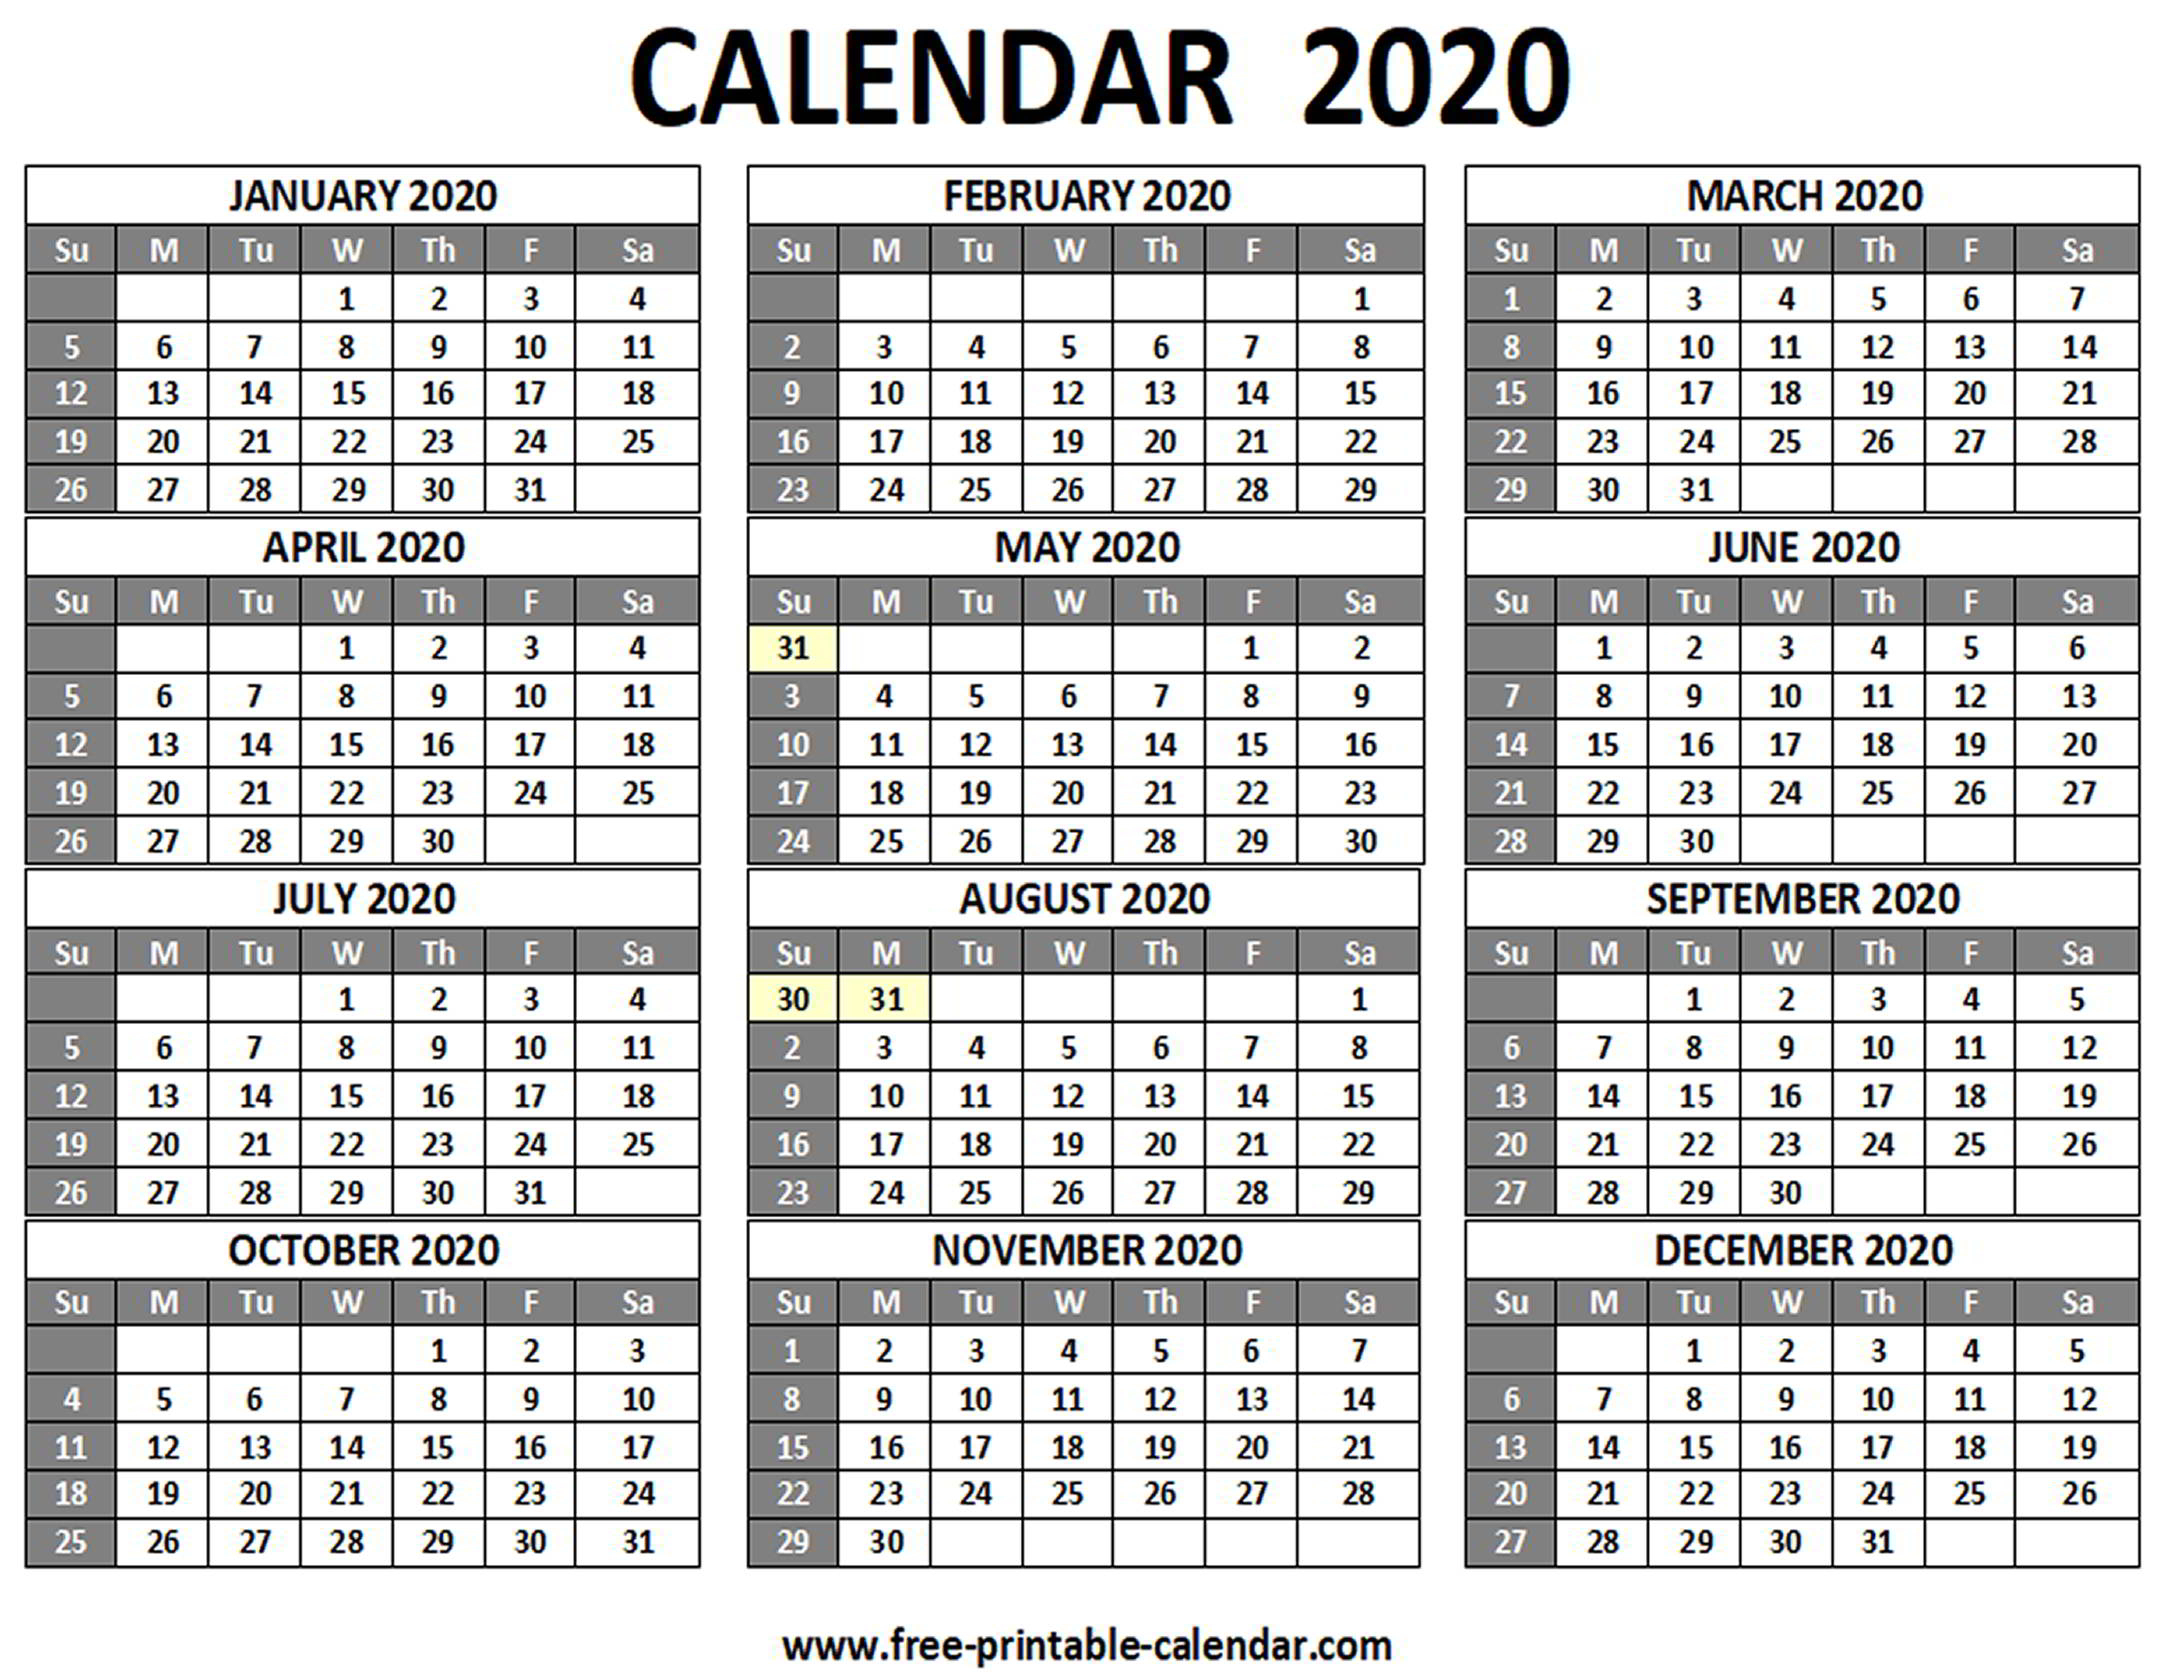 Printable 2020 Calendar - Free-Printable-Calendar throughout Sunday To Saturday Calendar 2020 Printable